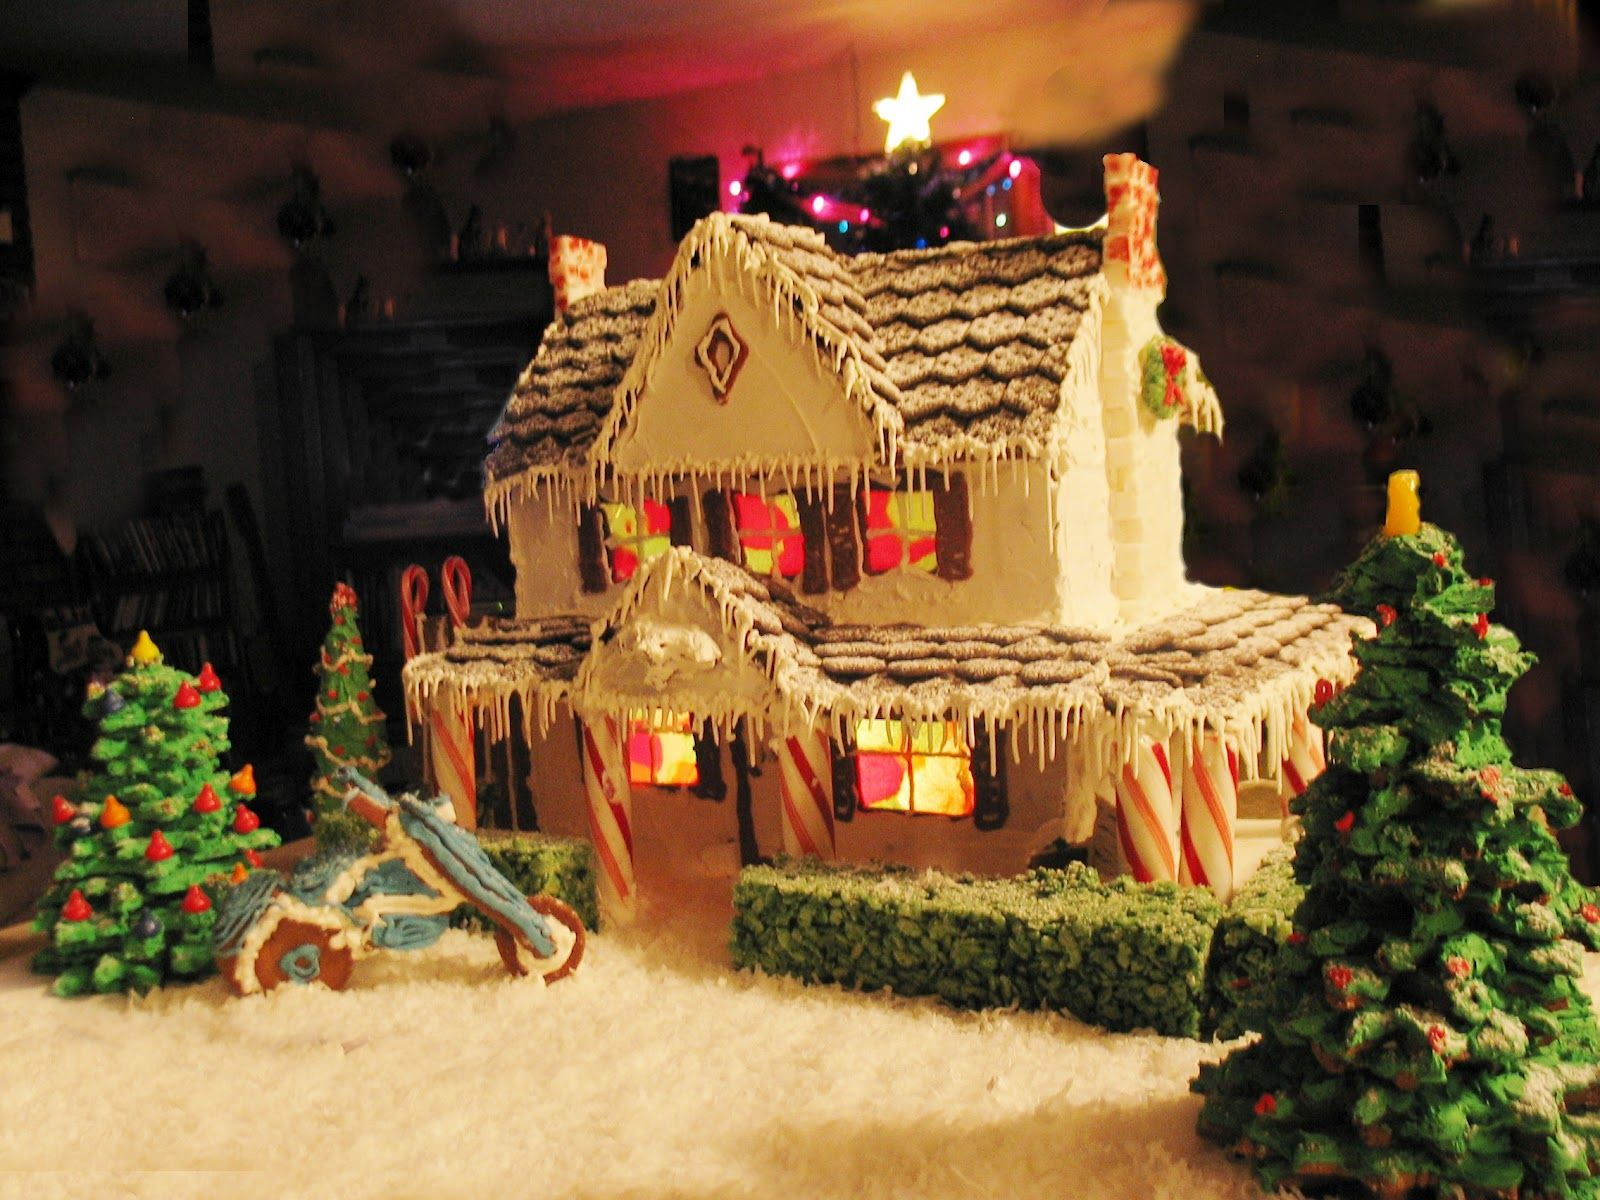 Cozy Gingerbread House With A Motorcycle By Mike Porteous